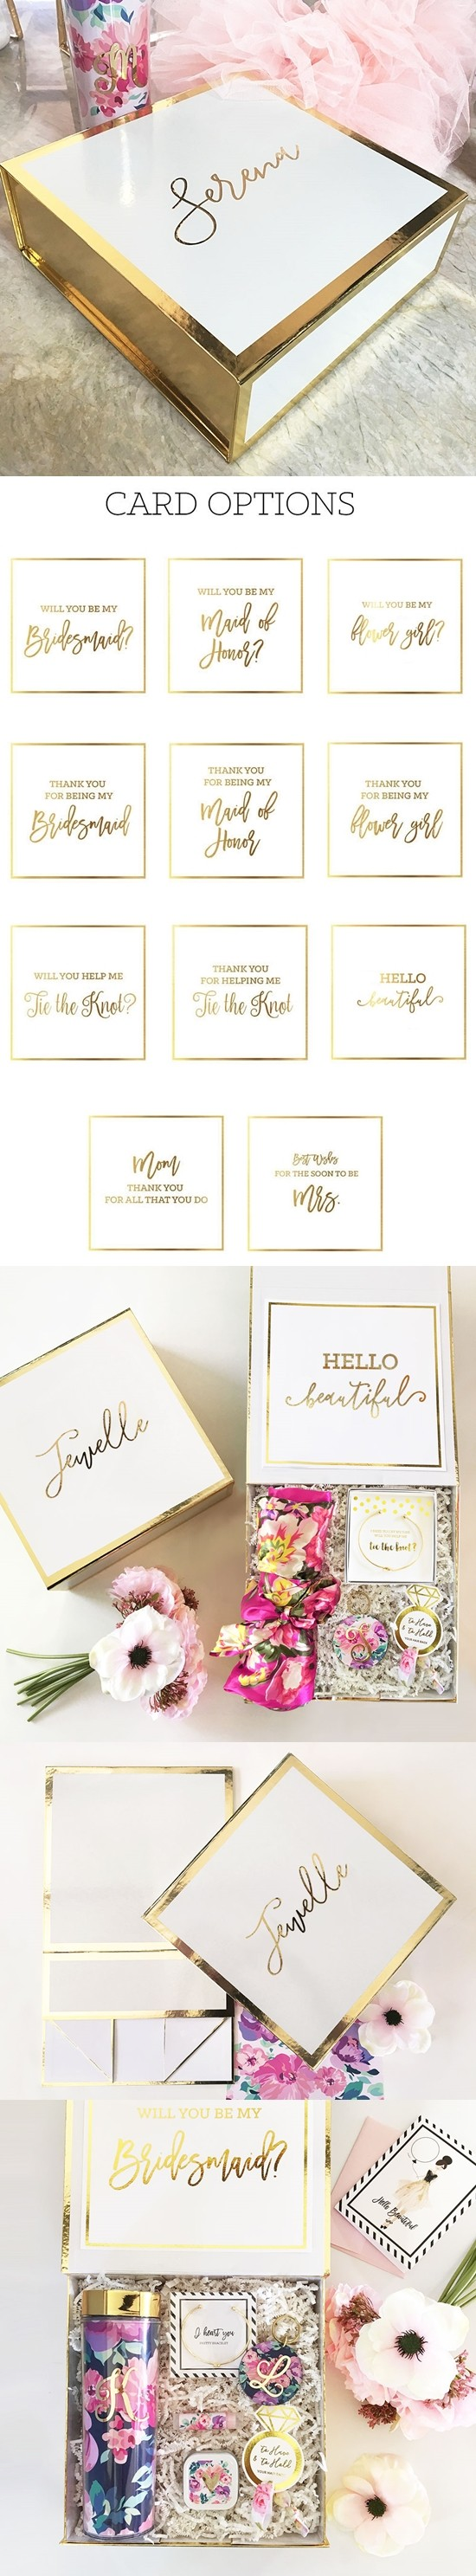 Event Blossom Personalized Gold-Bordered White Gift-Box w/ Insert Card